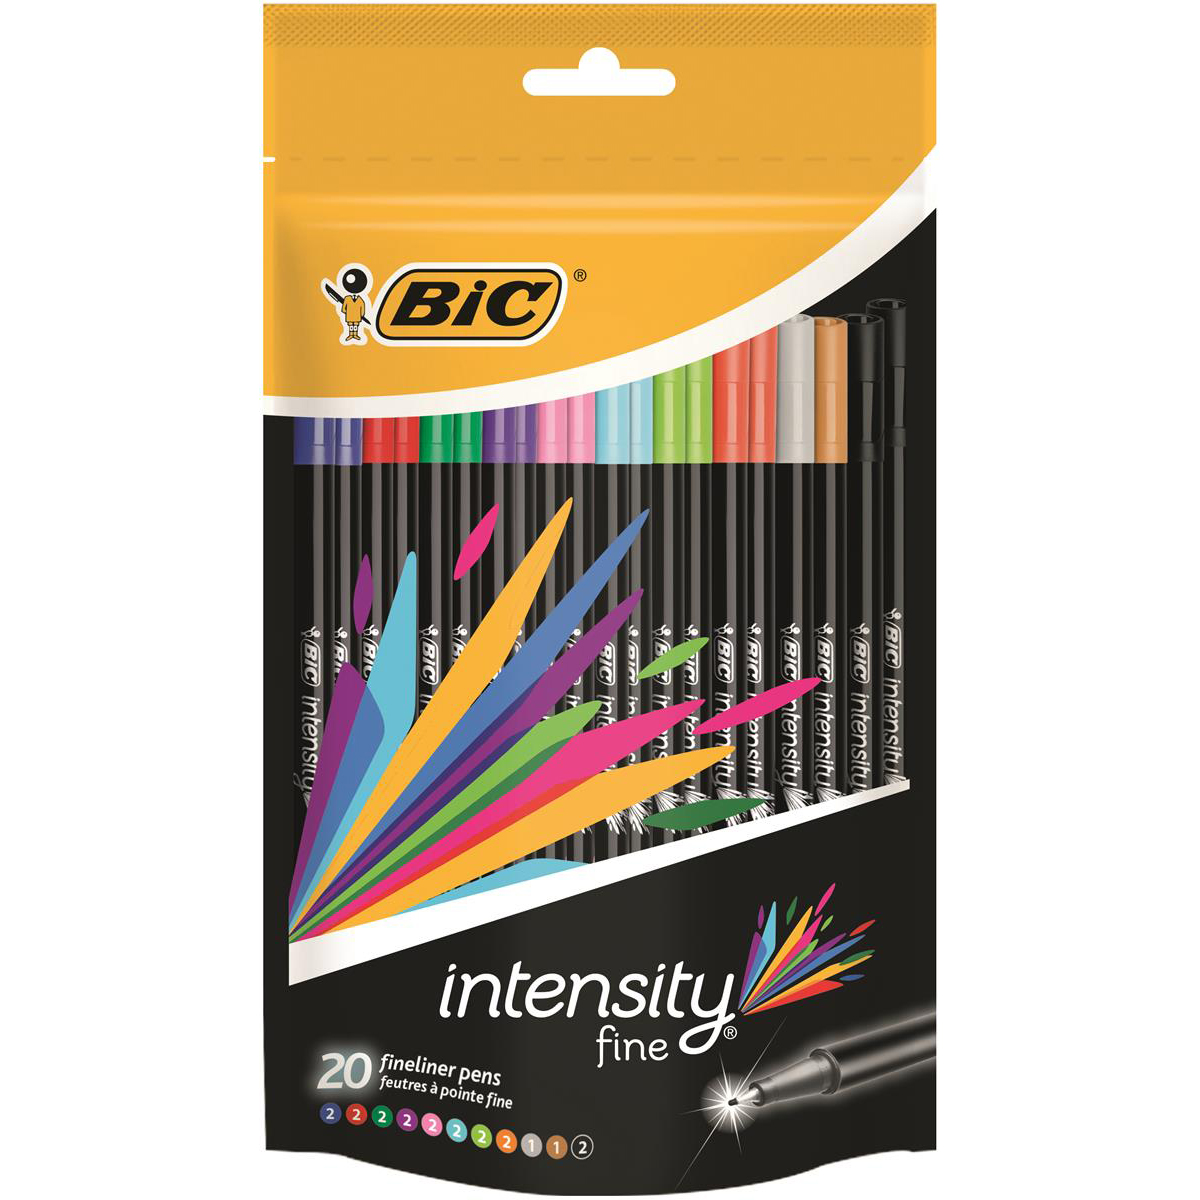 Bic Intensity Fine Writing Felt Pen 20 Assorted Bright Colours Ref 942097 Pack 20